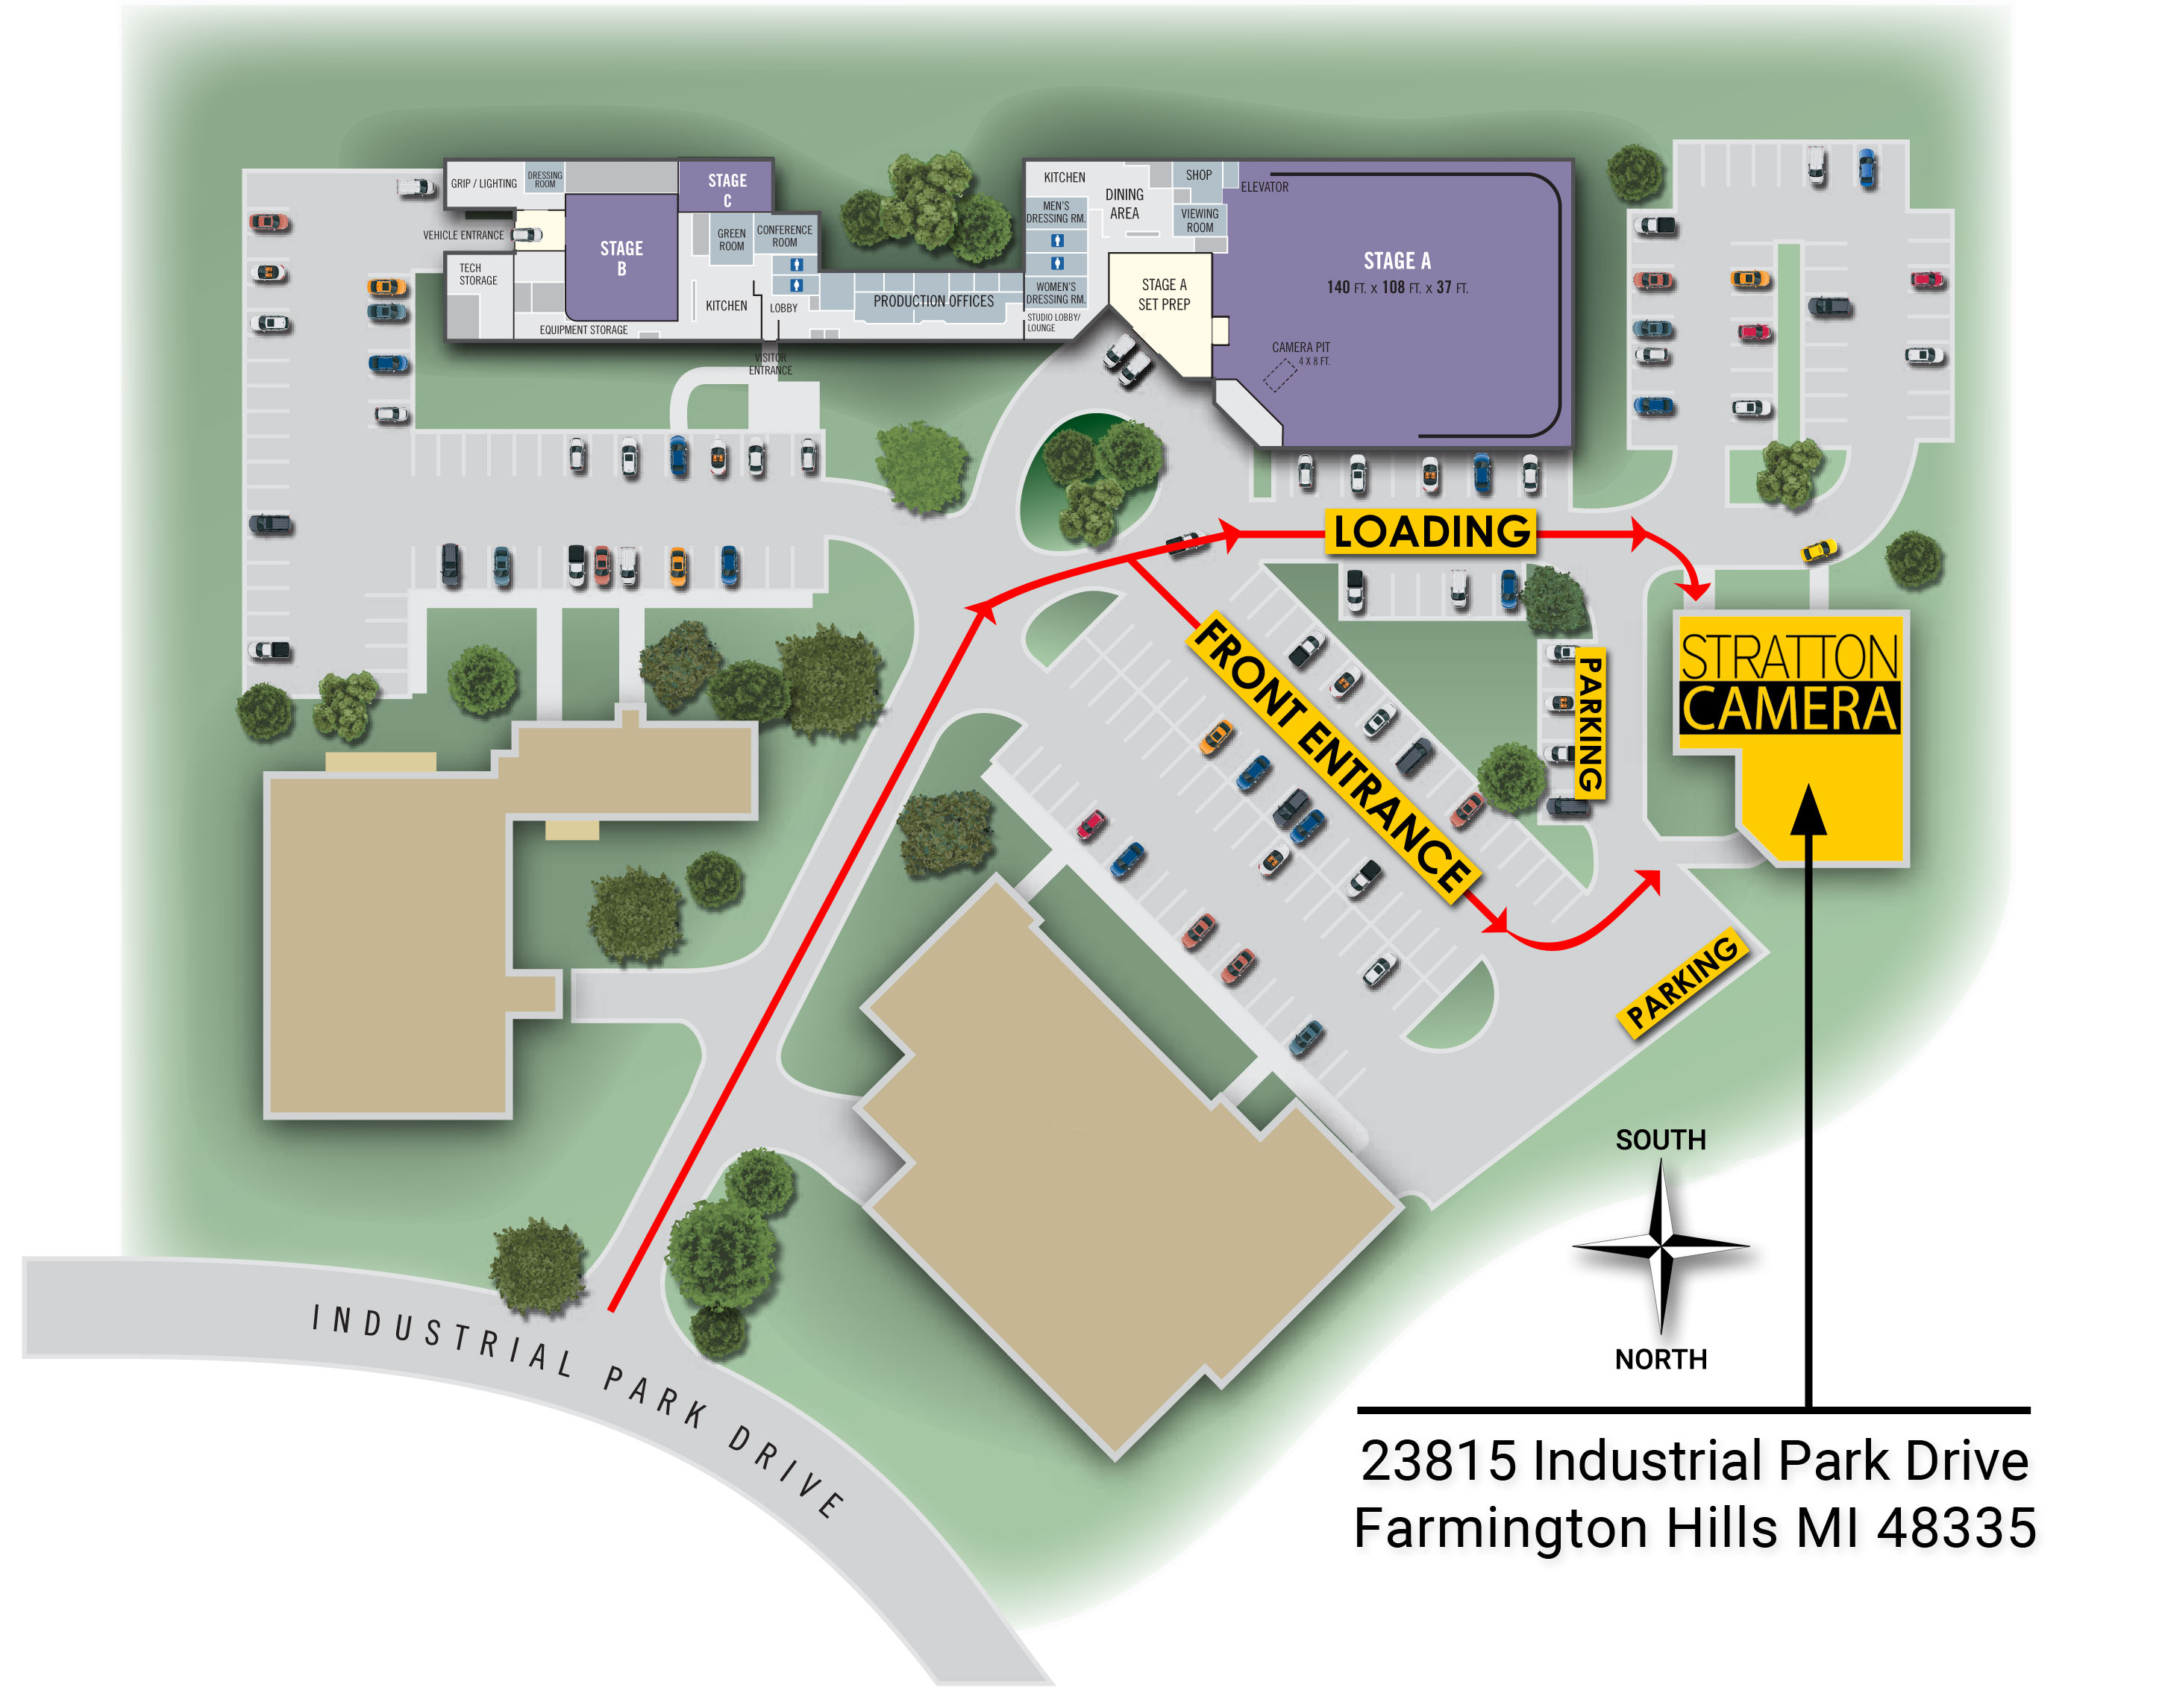 Map of Studio Center campus